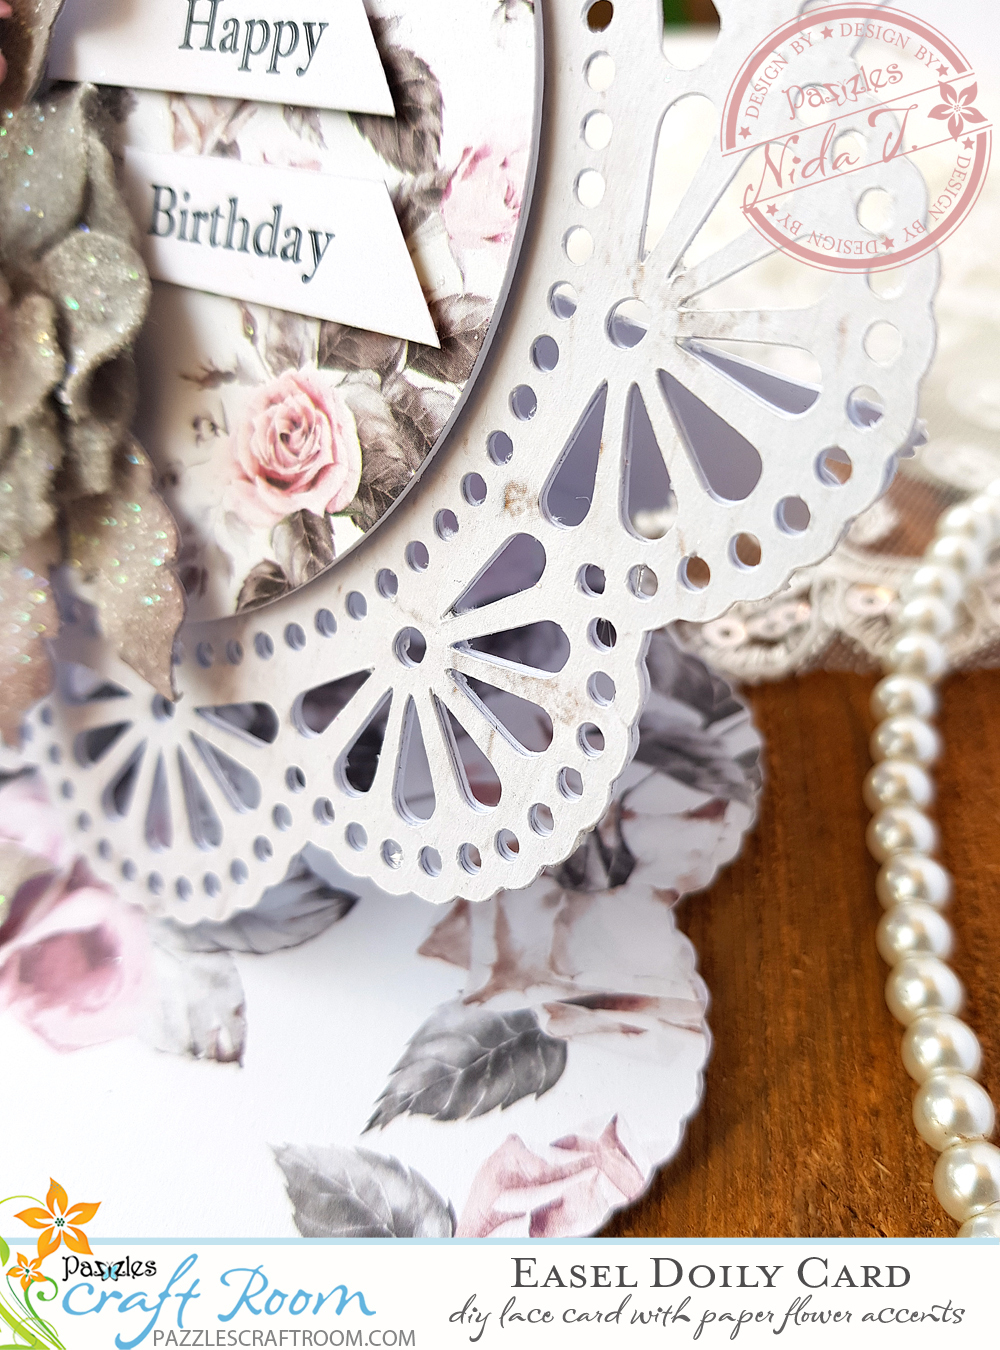 DIY Easel Doily Card with Paper Peony Flowers